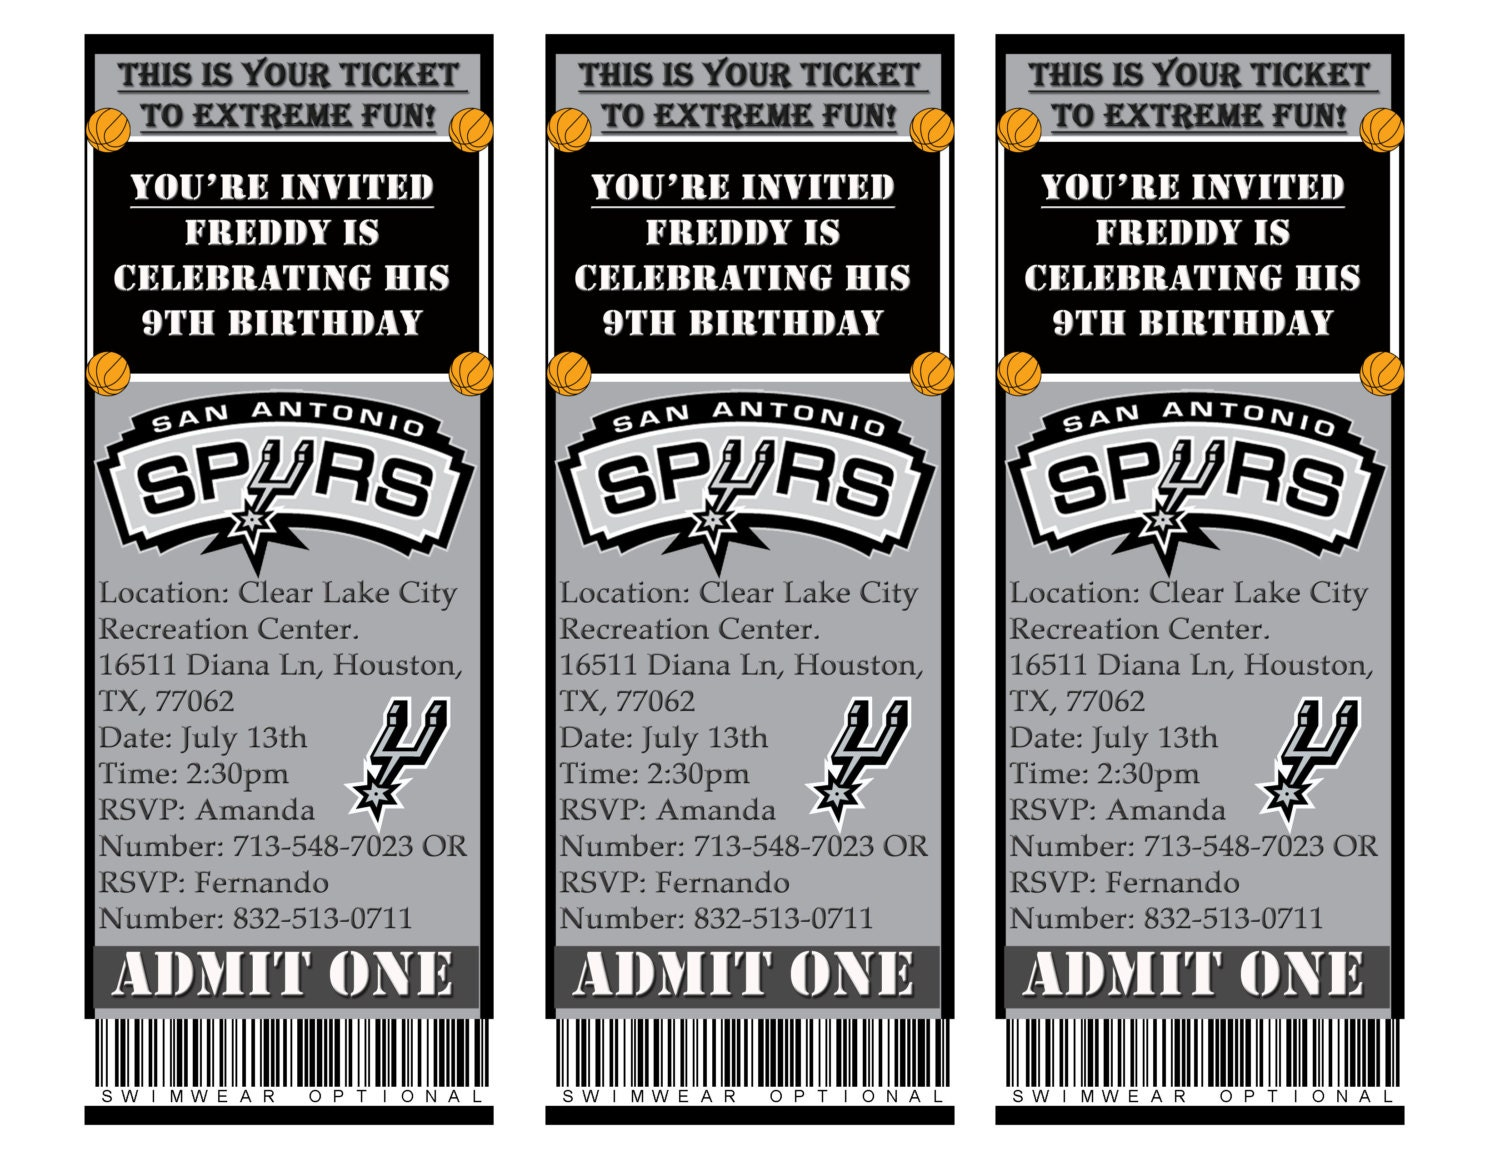 Cadillac San Antonio >> San Antonio Spurs Tickets Ticketmaster | Autos Post